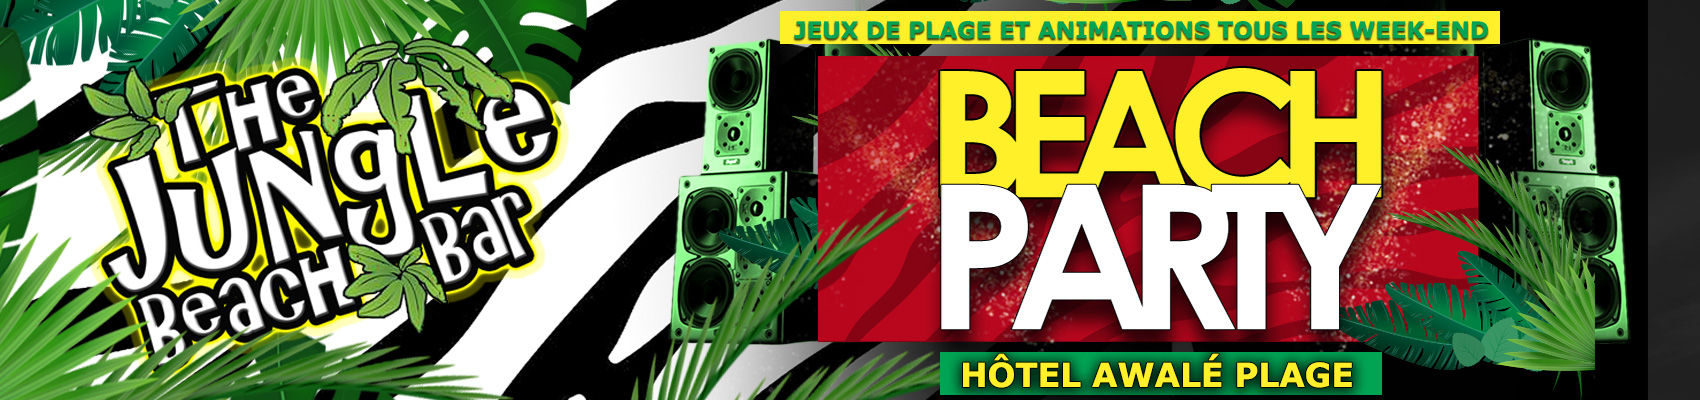 Bar-plage-grand-popo-benin-jungle-beach-bar-banner